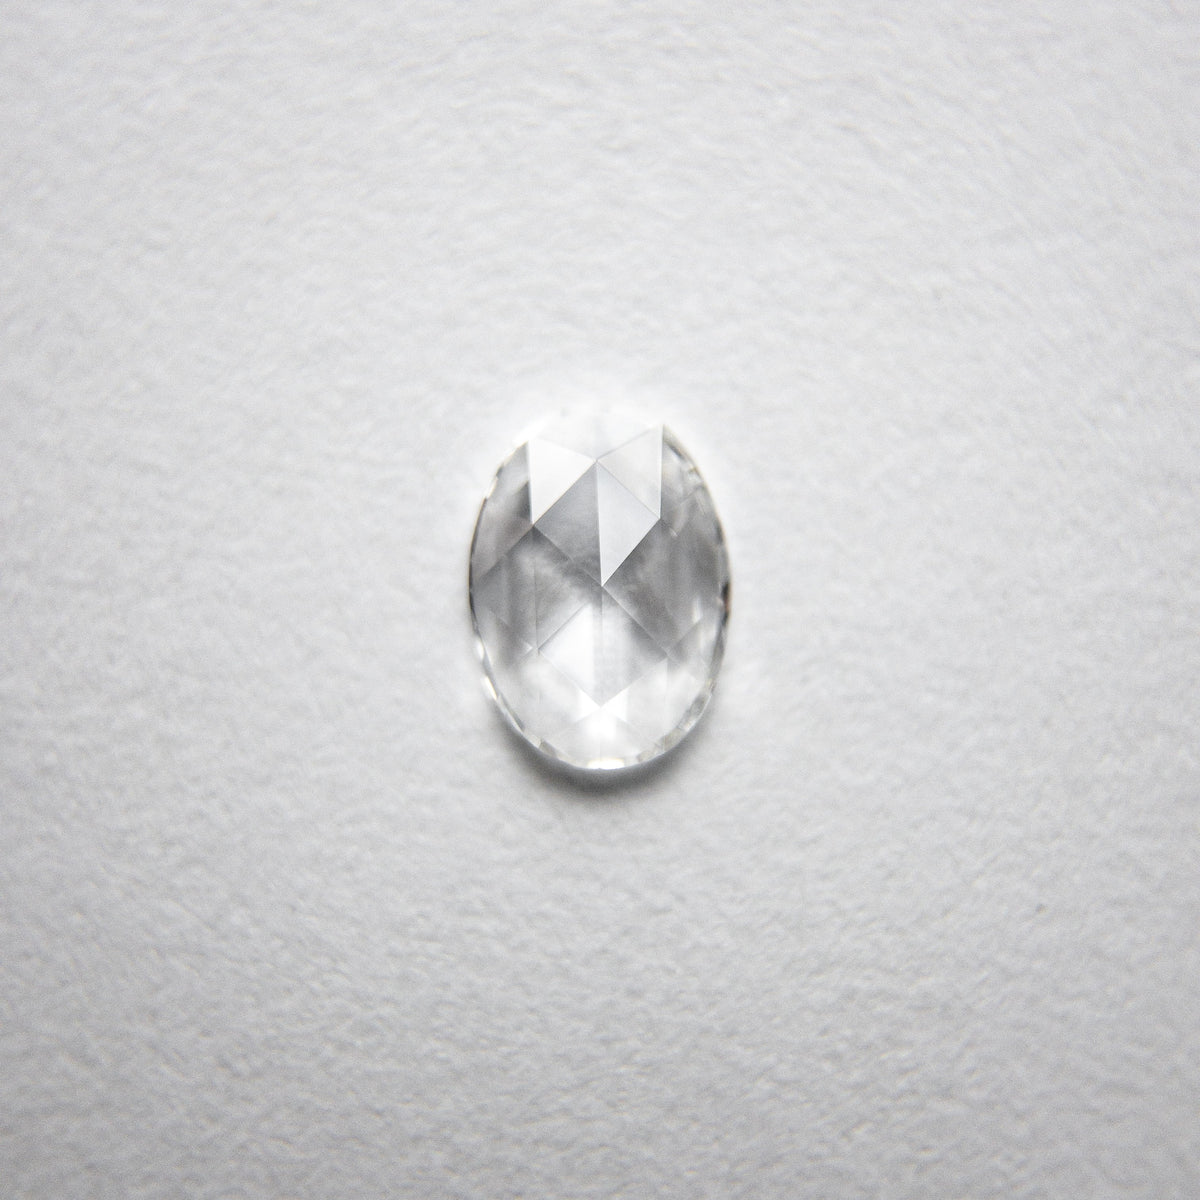 0.26ct 5.76x4.17x1.27mm Oval Rosecut 18238-07